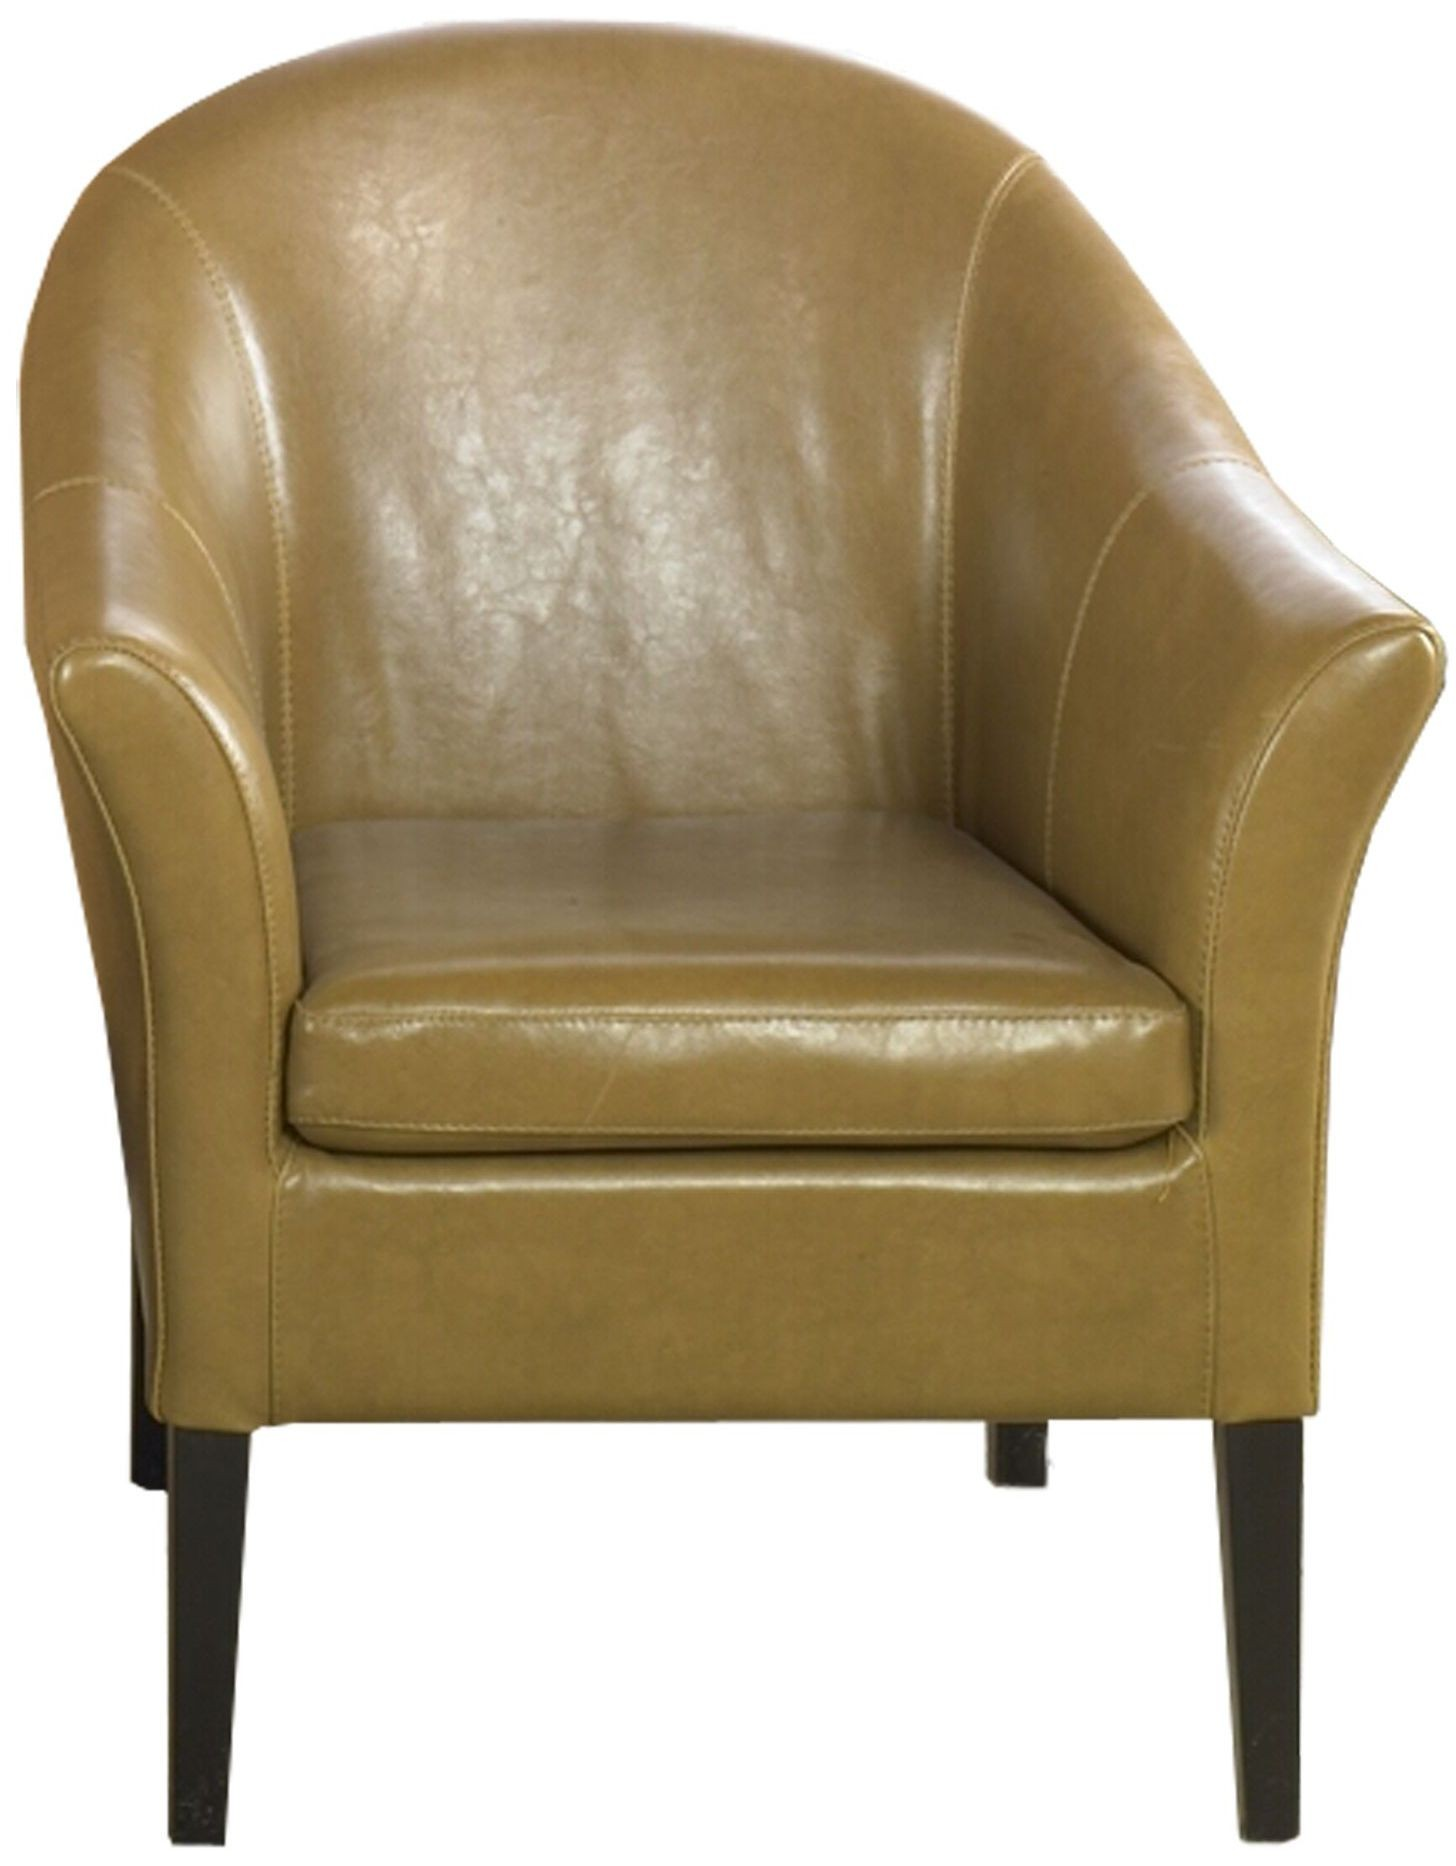 1404 Camel Leather Club Chair LCMC001CLCA Armen Living